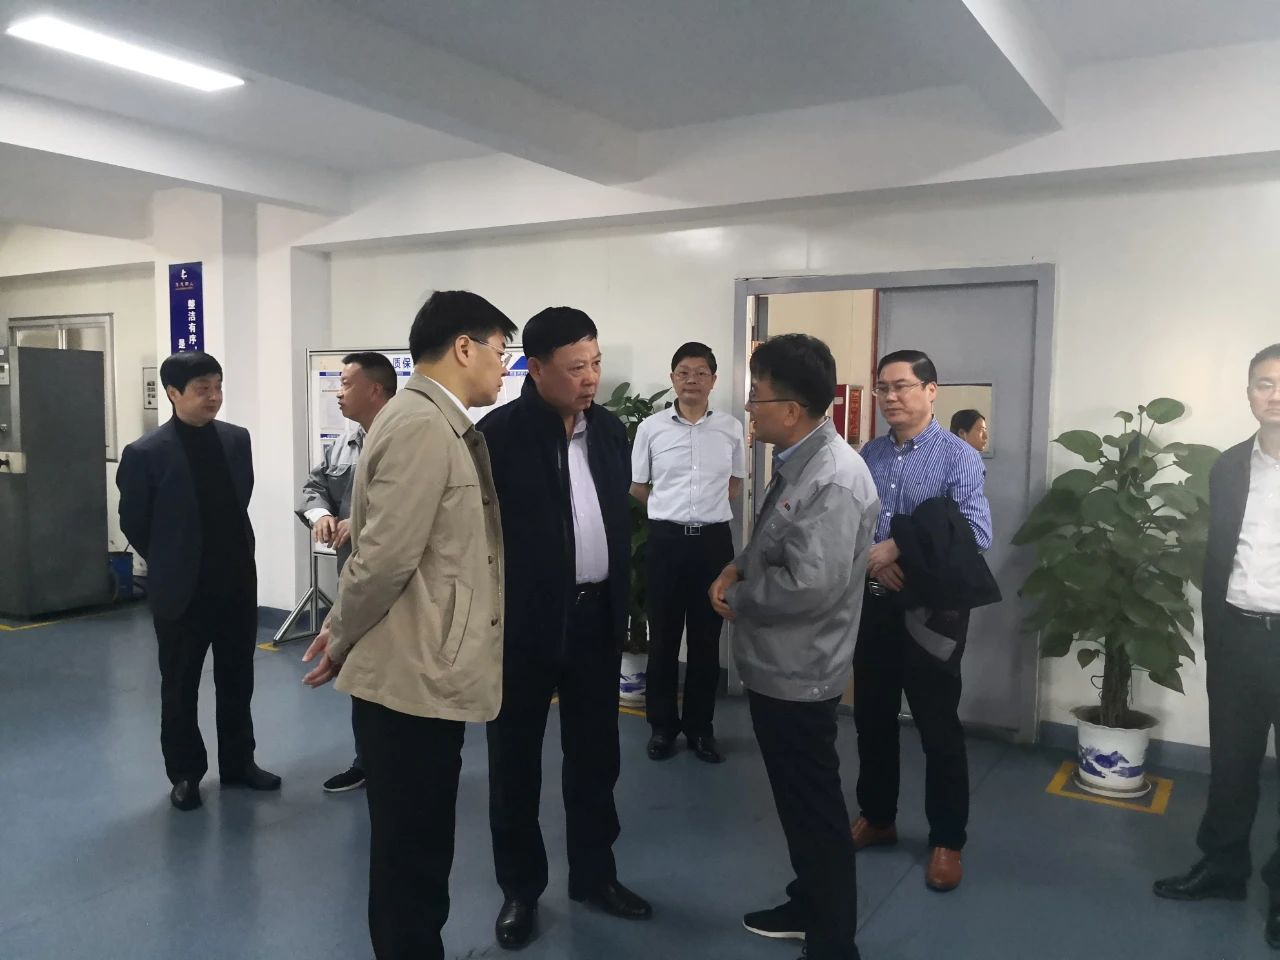 Guo An, Secretary of Yingtan municipal Party committee, Zhang Zijian, executive vice mayor and other leaders visited our company for investigation and guidance